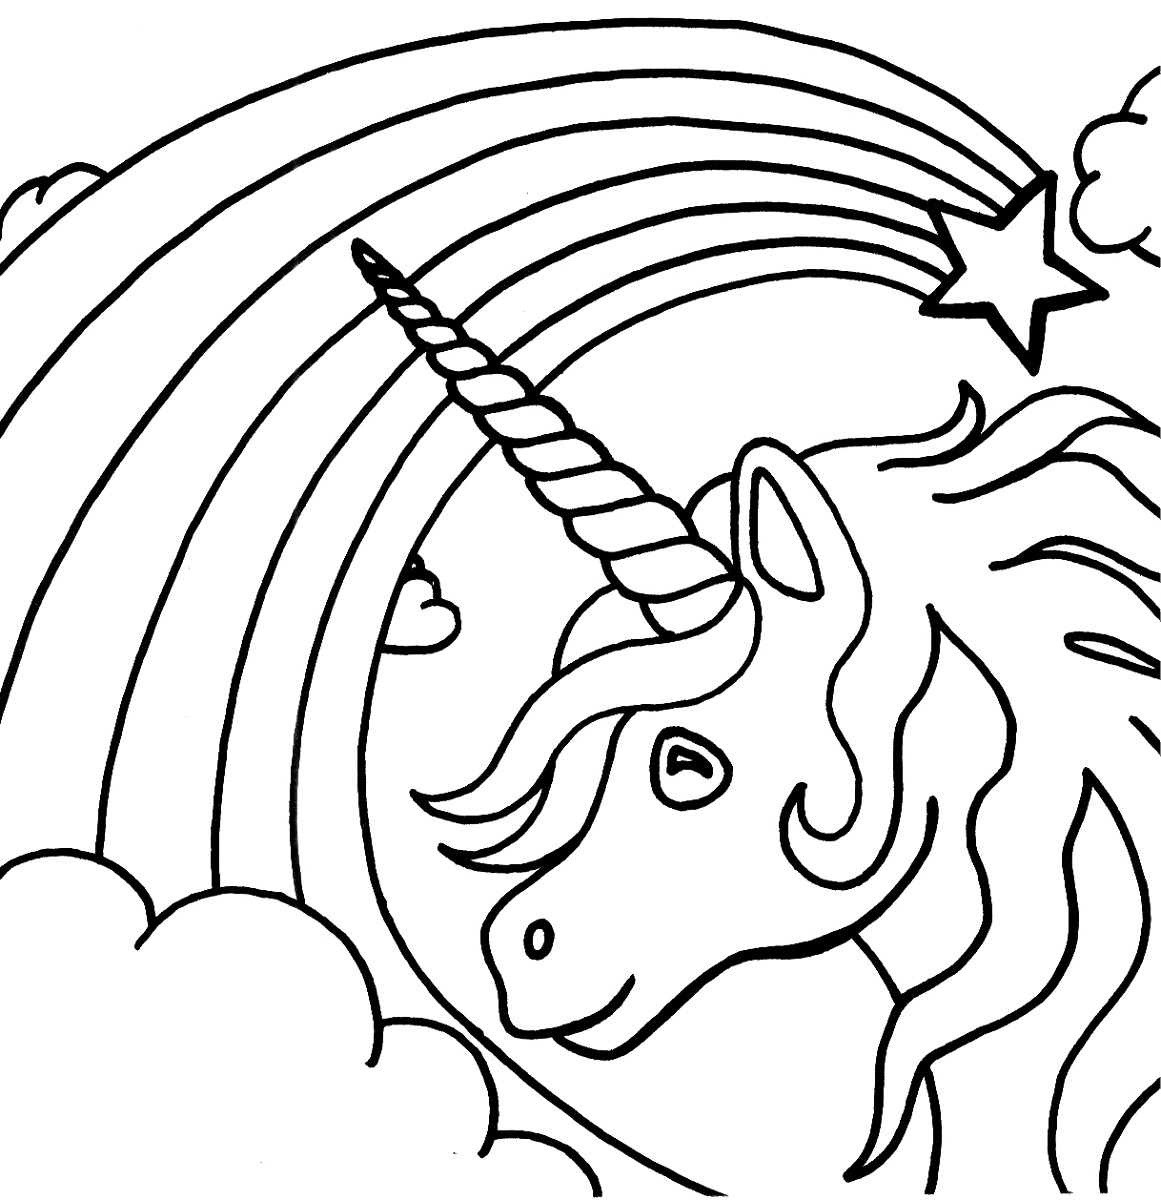 Unicorn Coloring Pages For Kids At Getcolorings